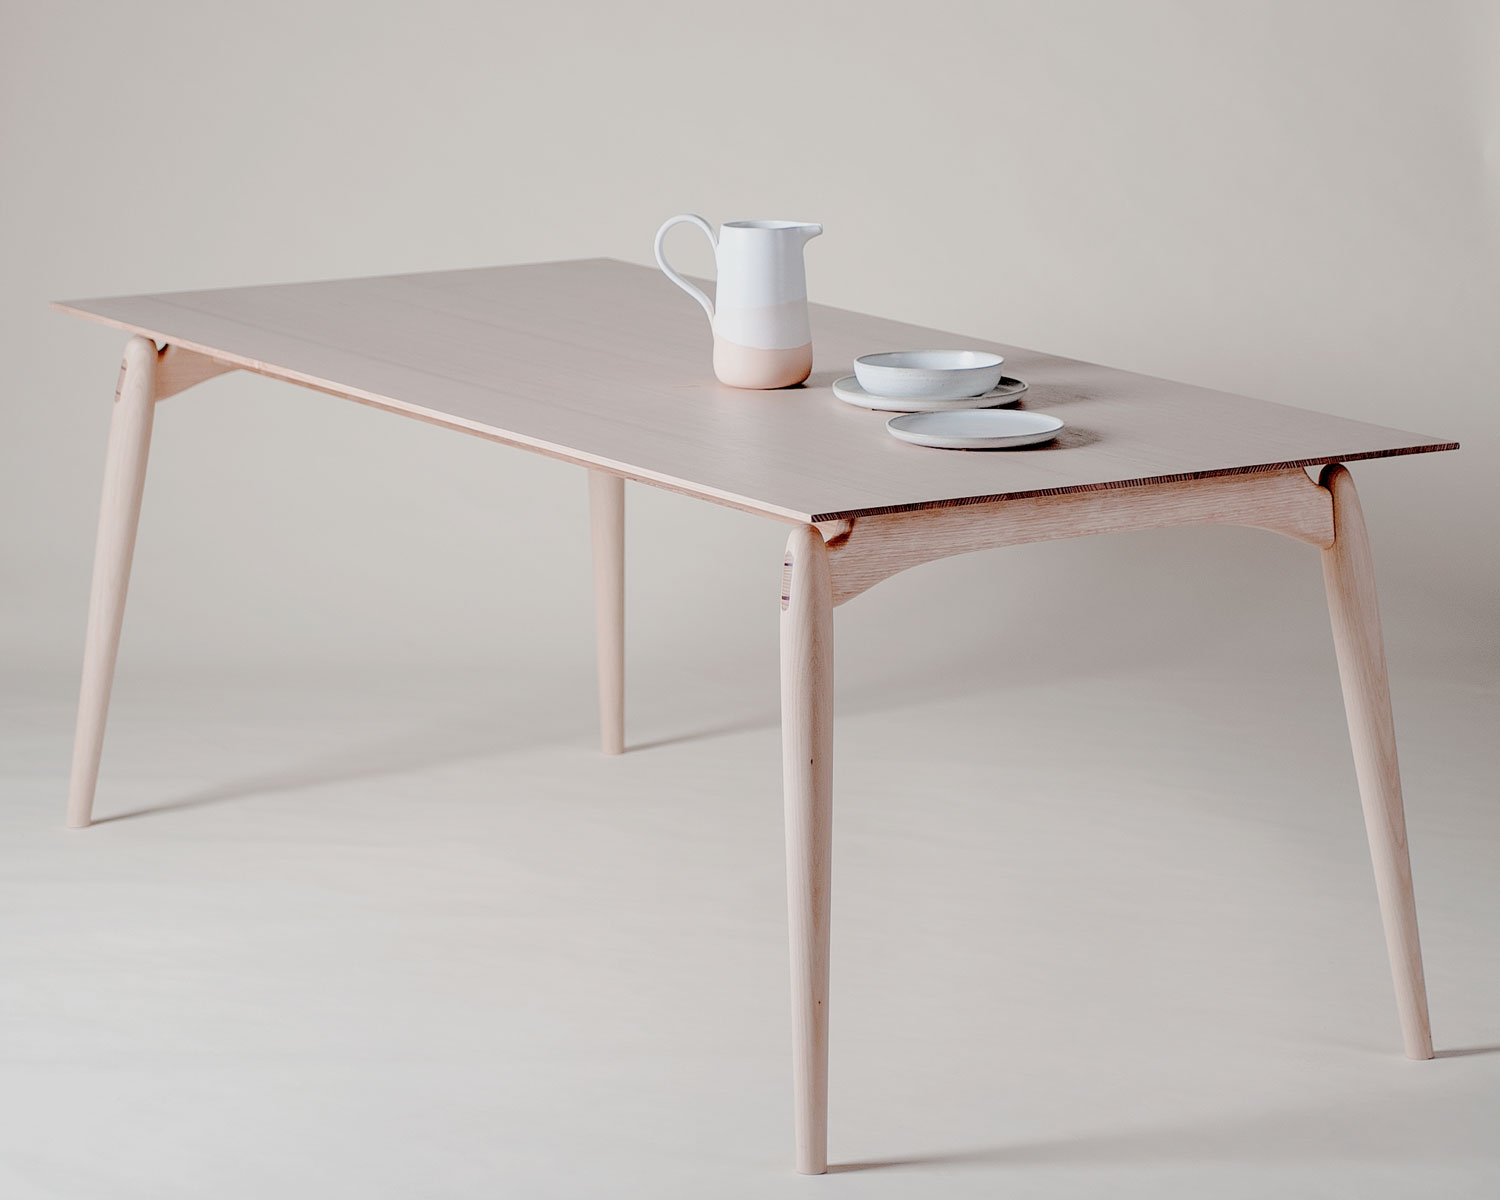 Fred-Table-by-Modern-Times-and-Adam-Markowitz-Yellowtrace-06.jpg